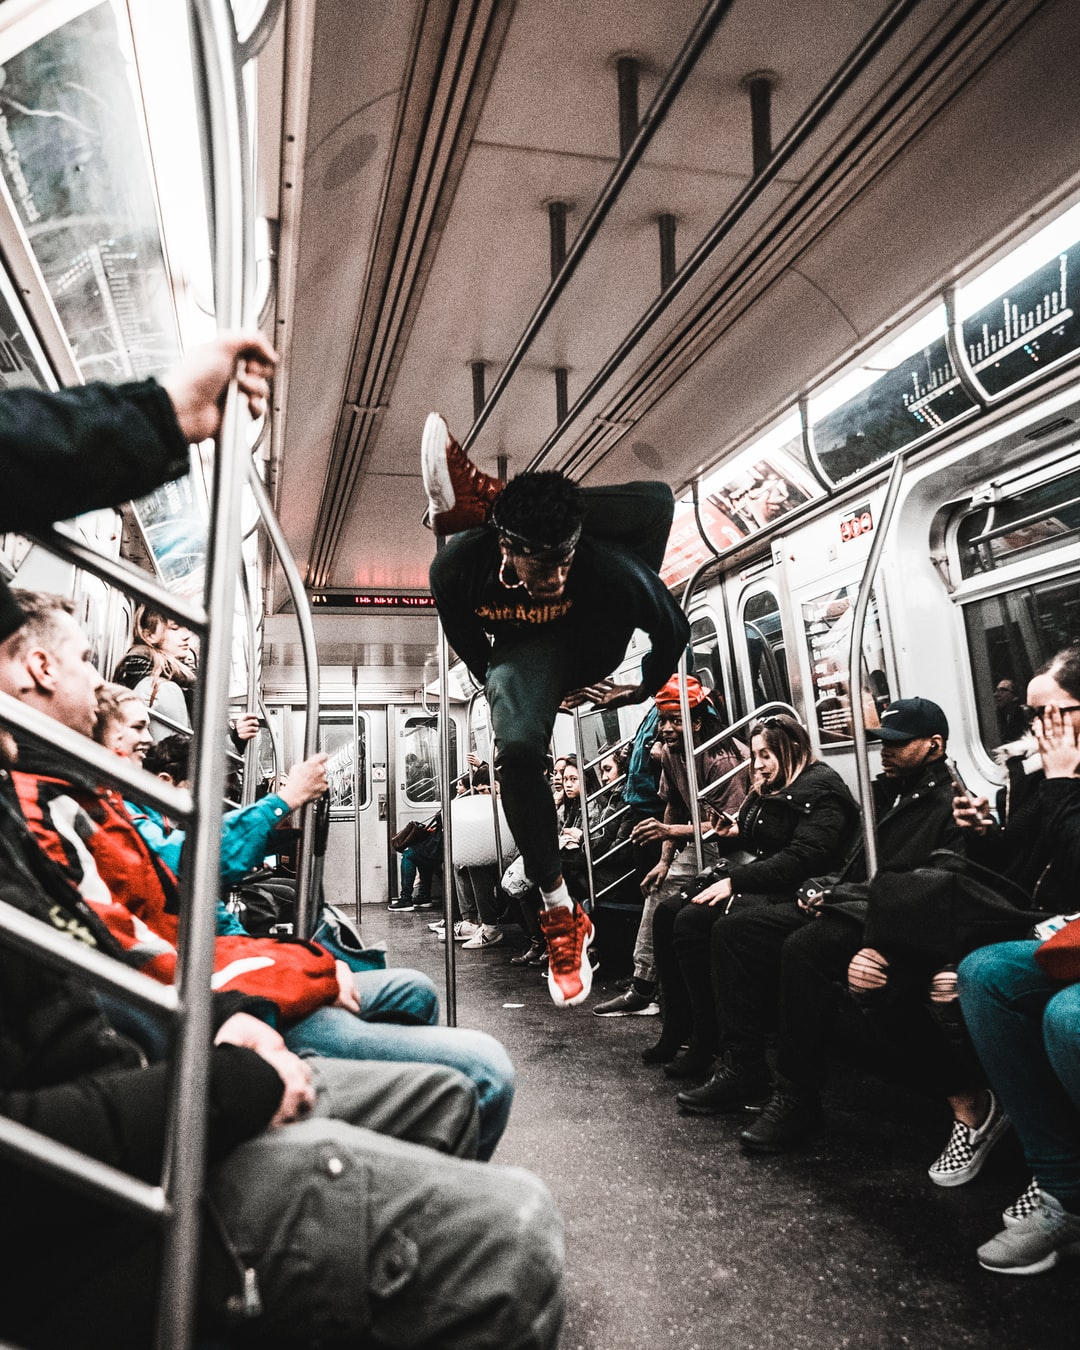 A normal subway ride in New York City.